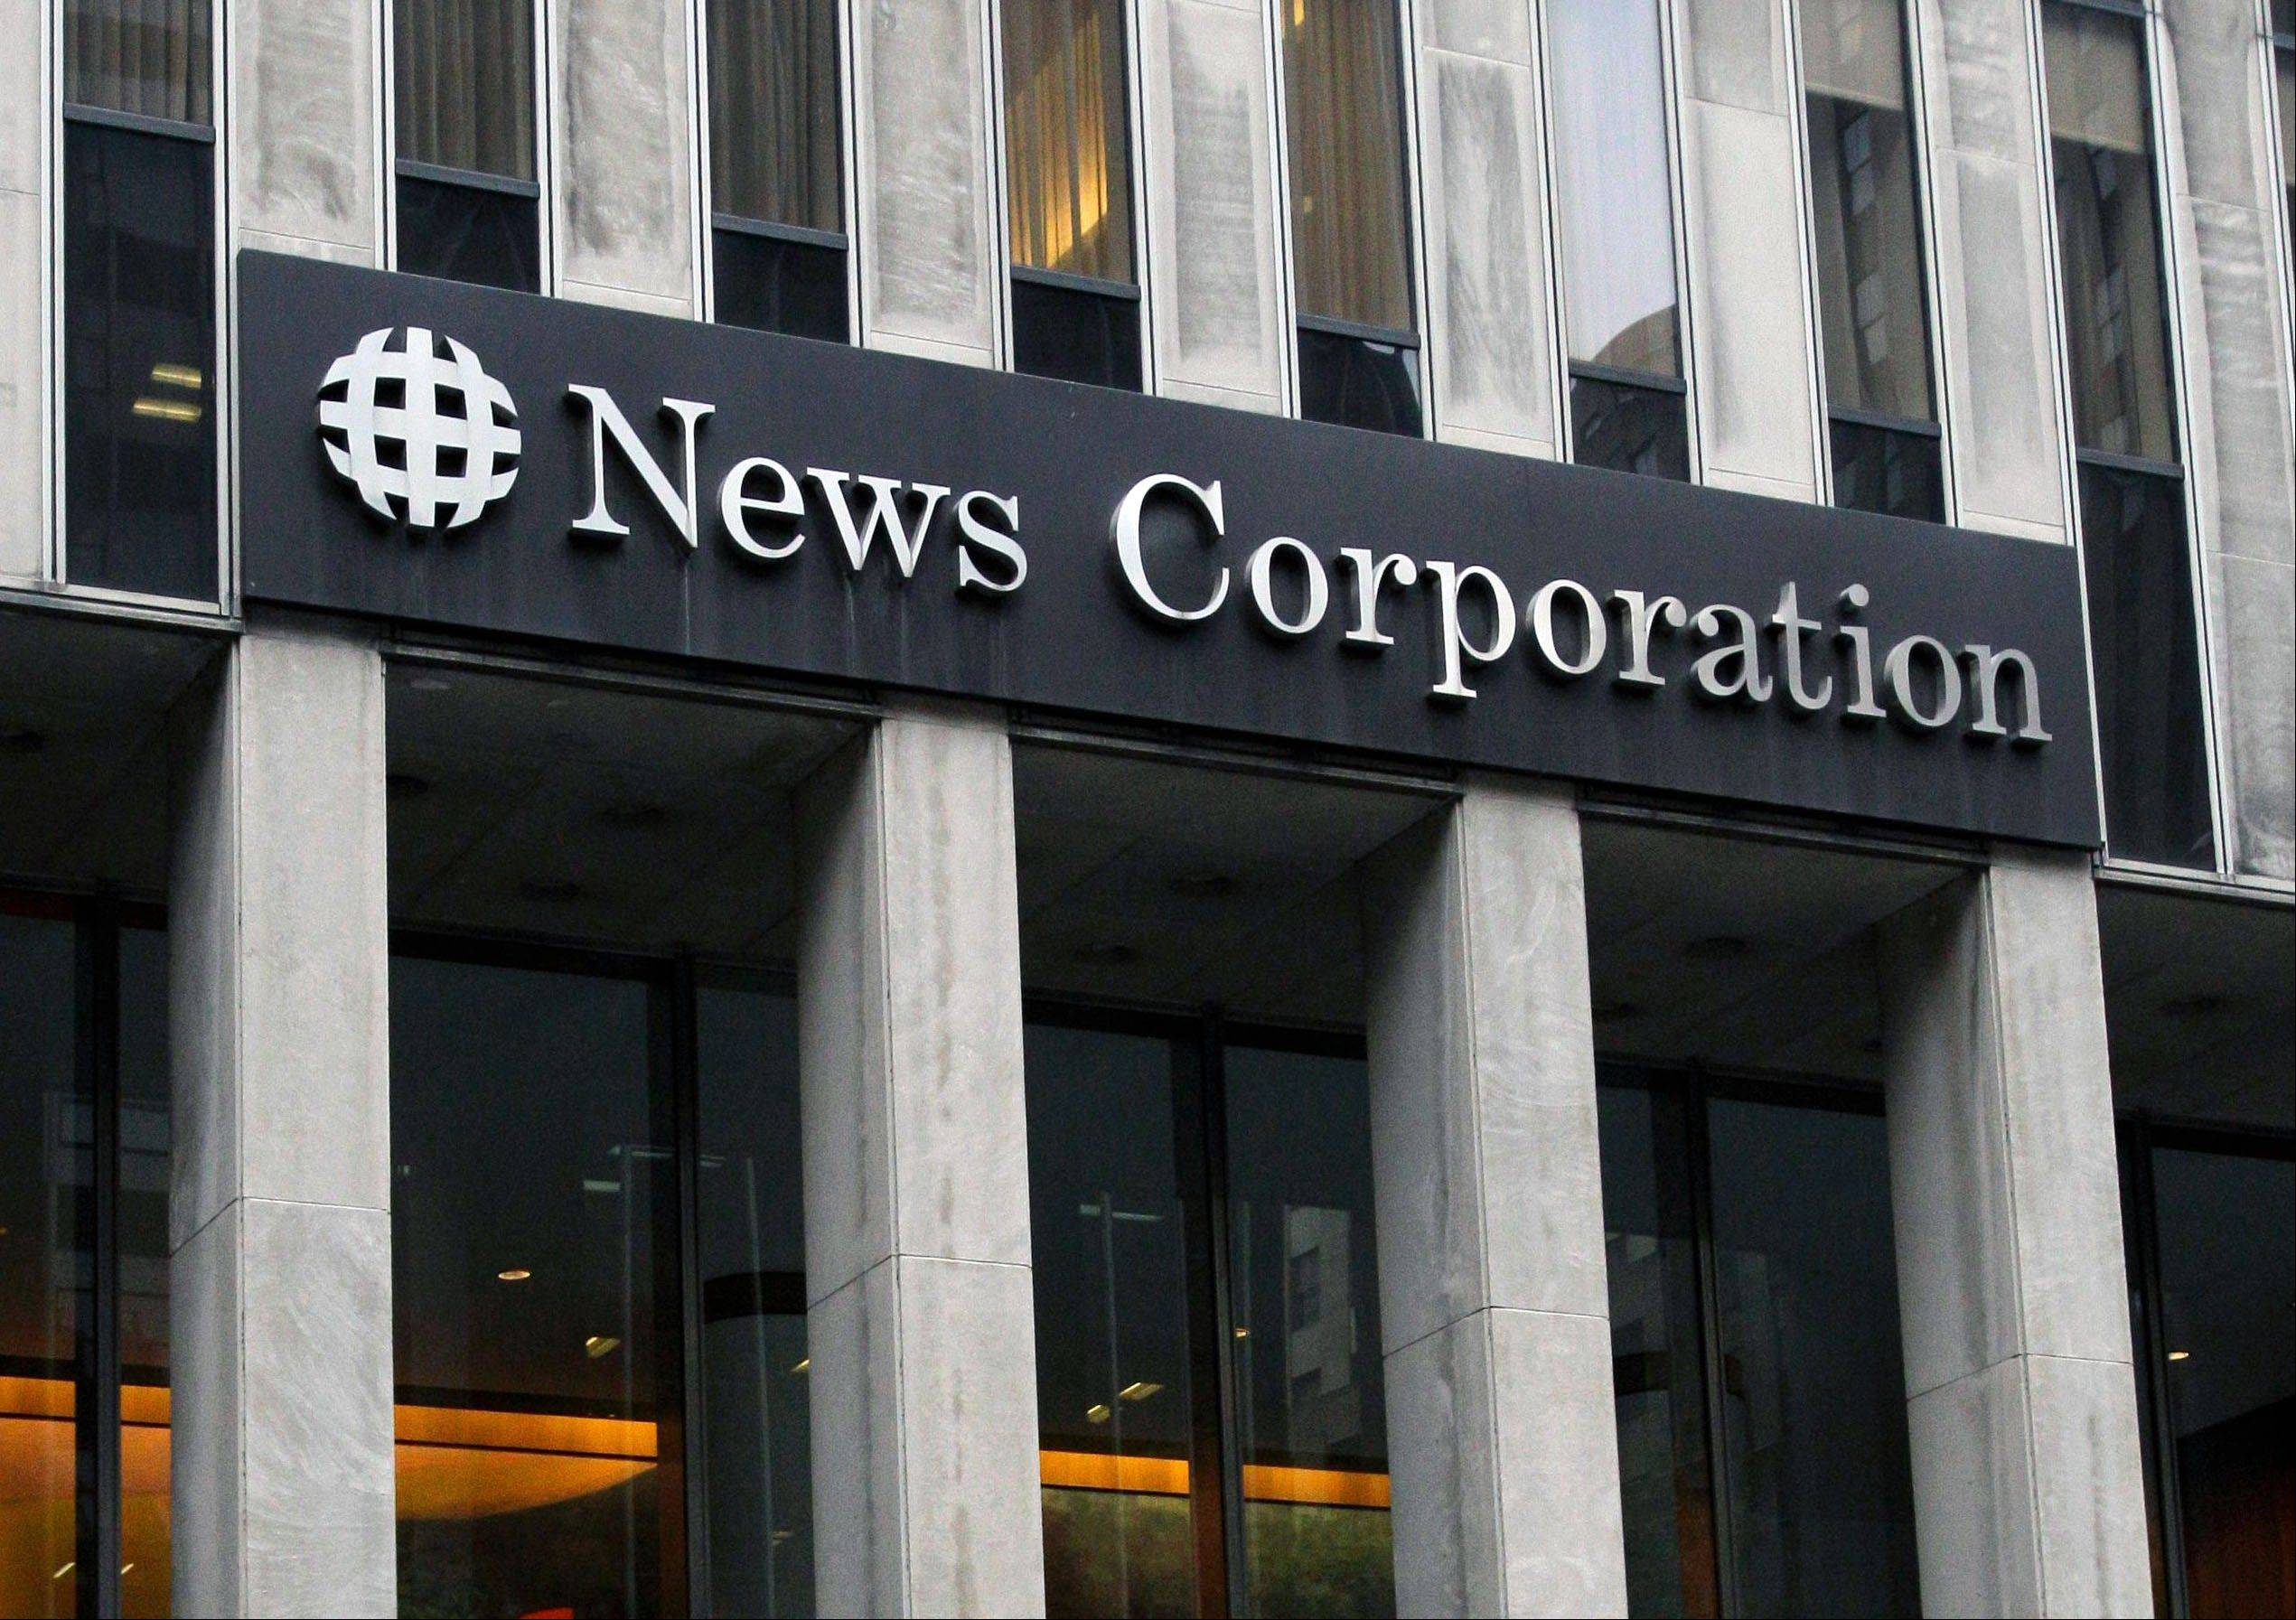 News Corp. reported that net income for the latest quarter tripled from a year ago, reflecting a one-time gain from the sale of its stake in digital video technology company NDS. Revenue rose 2 percent thanks to growth at pay TV networks such as Fox News Channel.